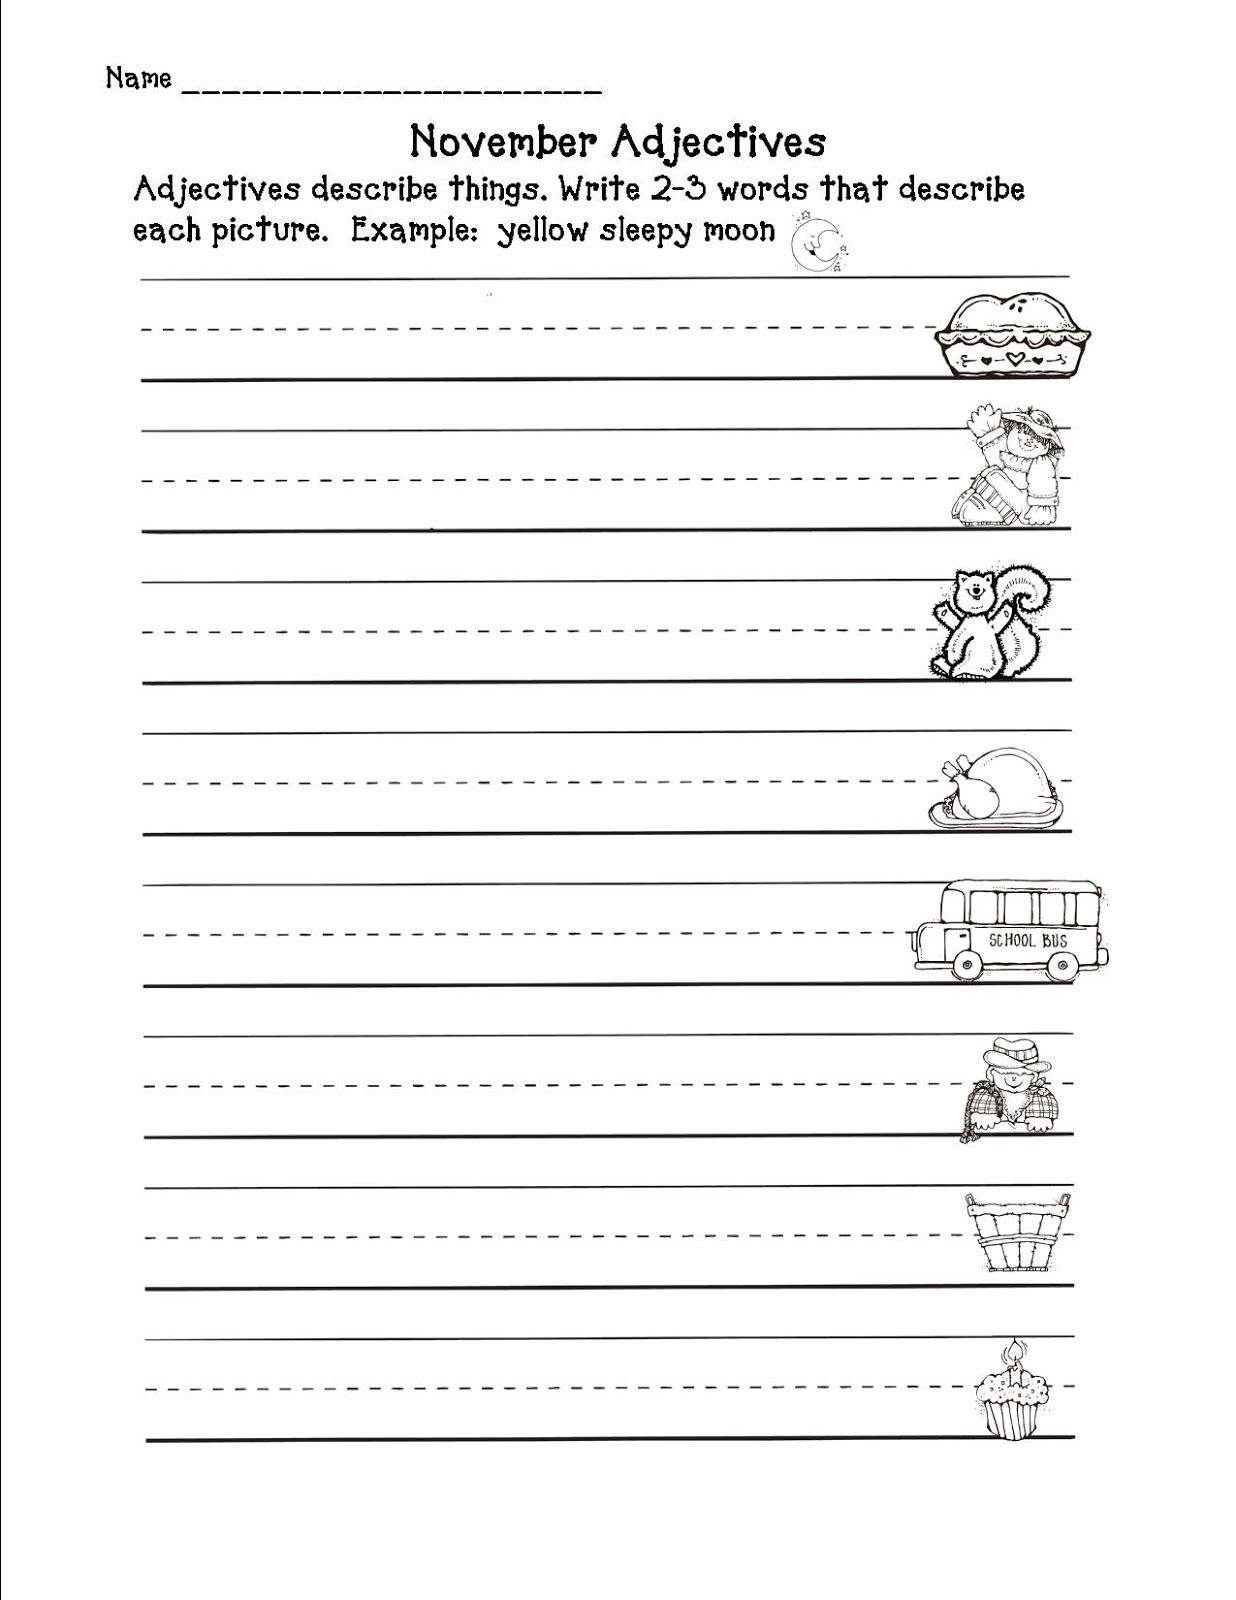 November Adjectives Worksheet Second Grade Freebies